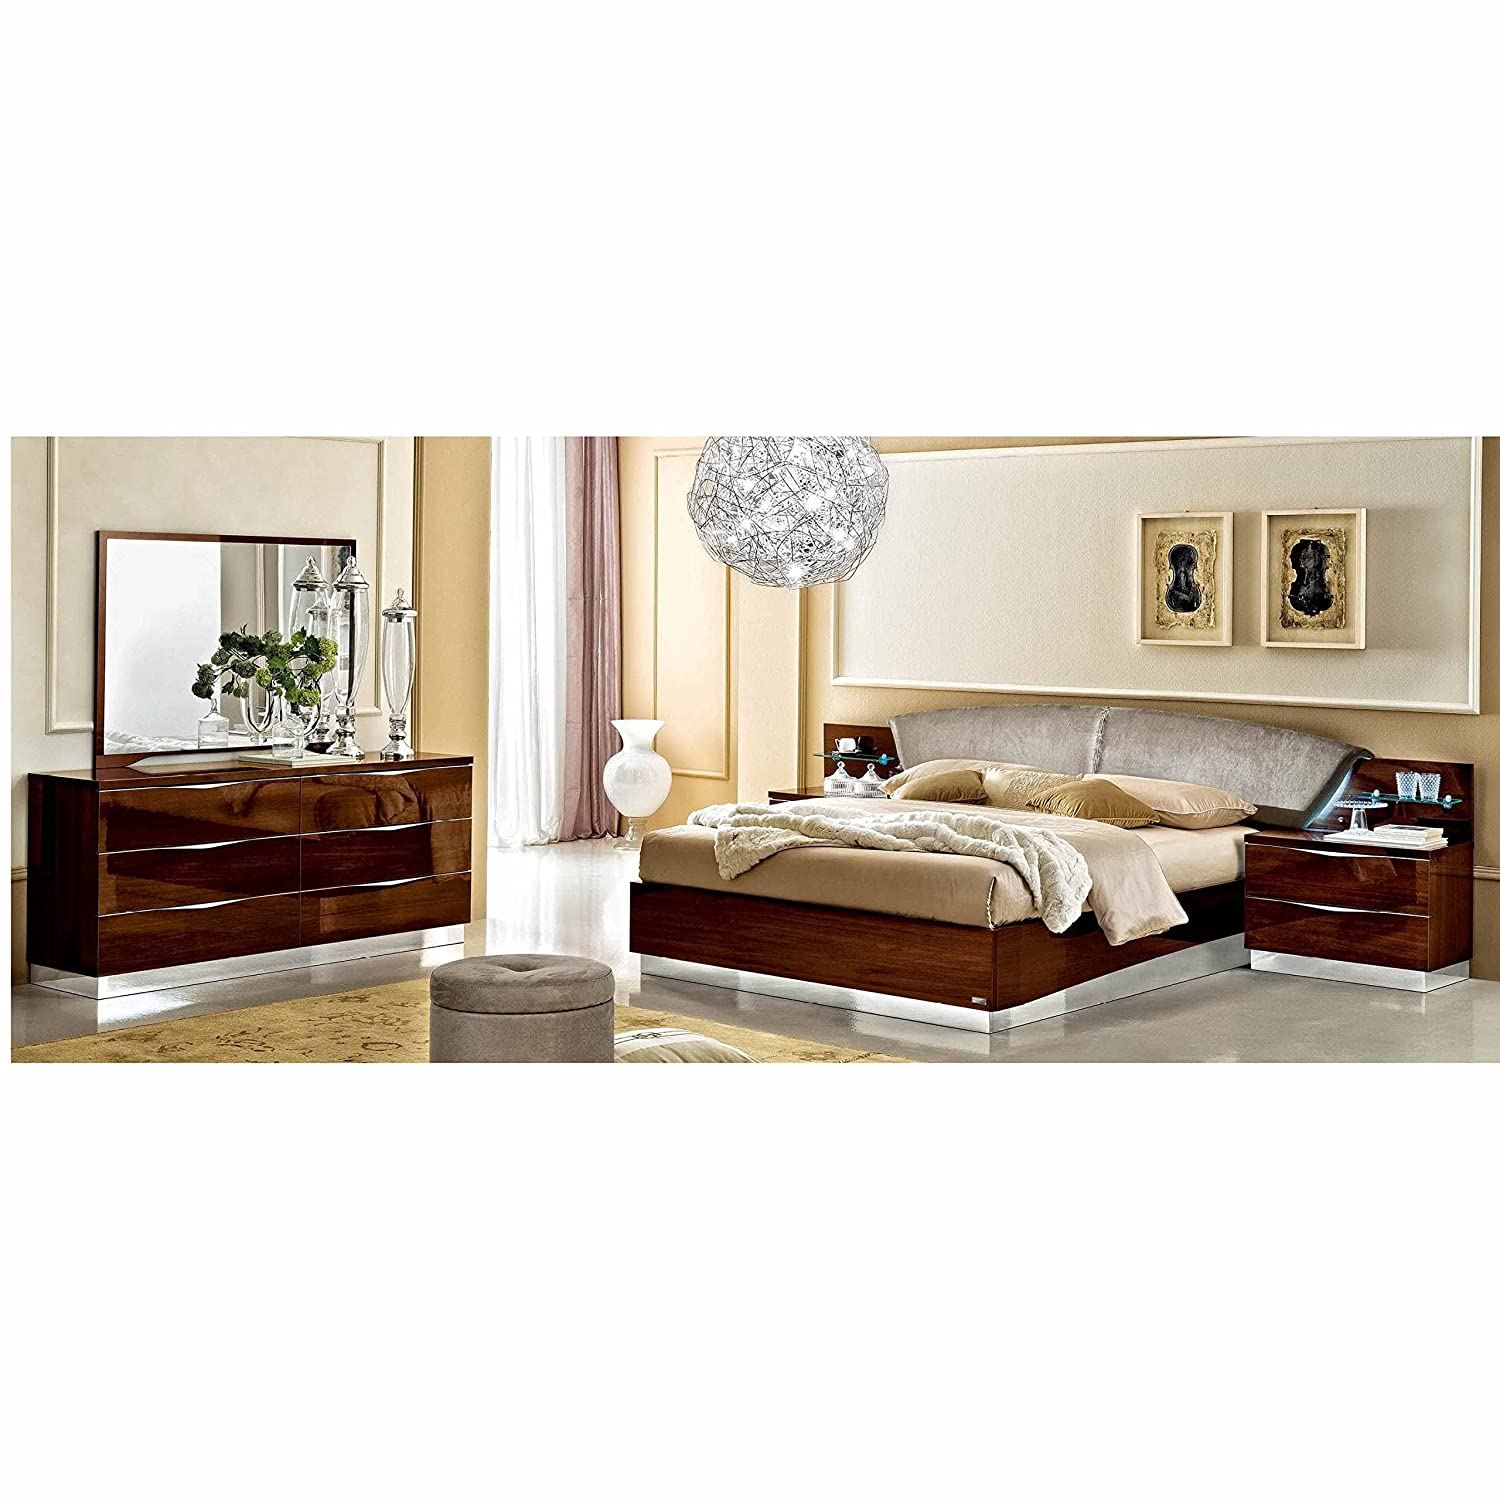 Amazon.com: Luca Home Walnut and Nabuk Italian Leather Bed Queen ...